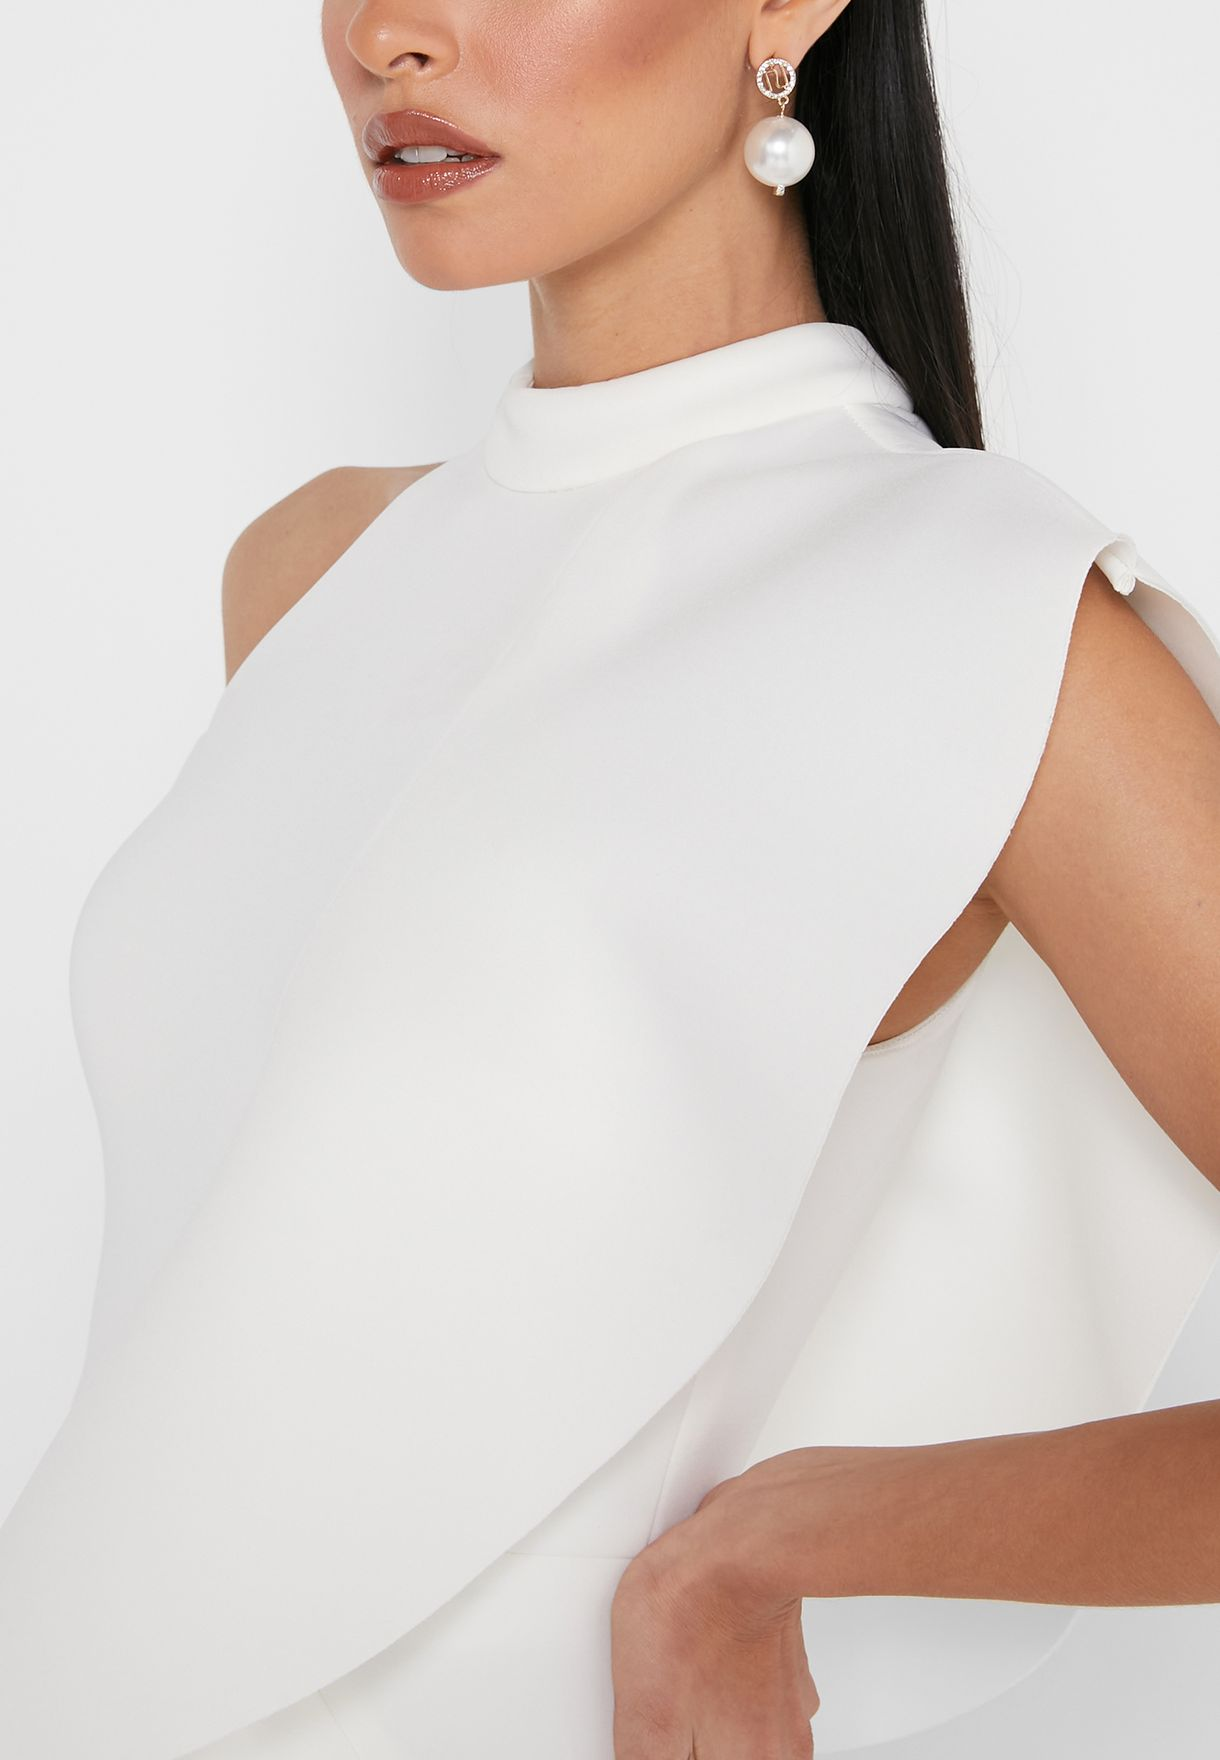 High Neck Ruffle Detail Dress